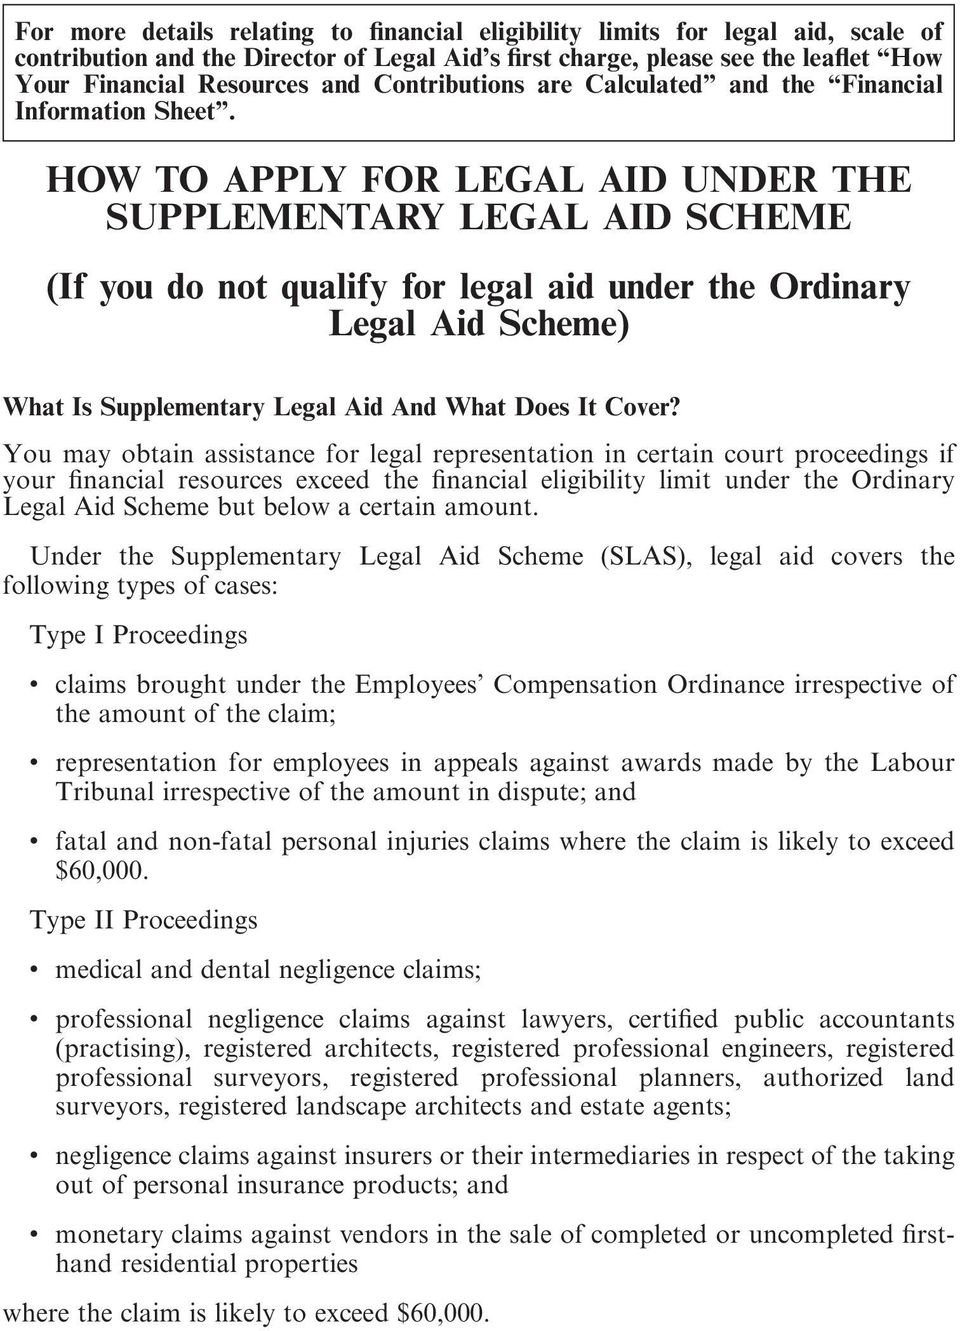 HOW TO APPLY FOR LEGAL AID UNDER THE SUPPLEMENTARY LEGAL AID SCHEME (If you do not qualify for legal aid under the Ordinary Legal Aid Scheme) What Is Supplementary Legal Aid And What Does It Cover?